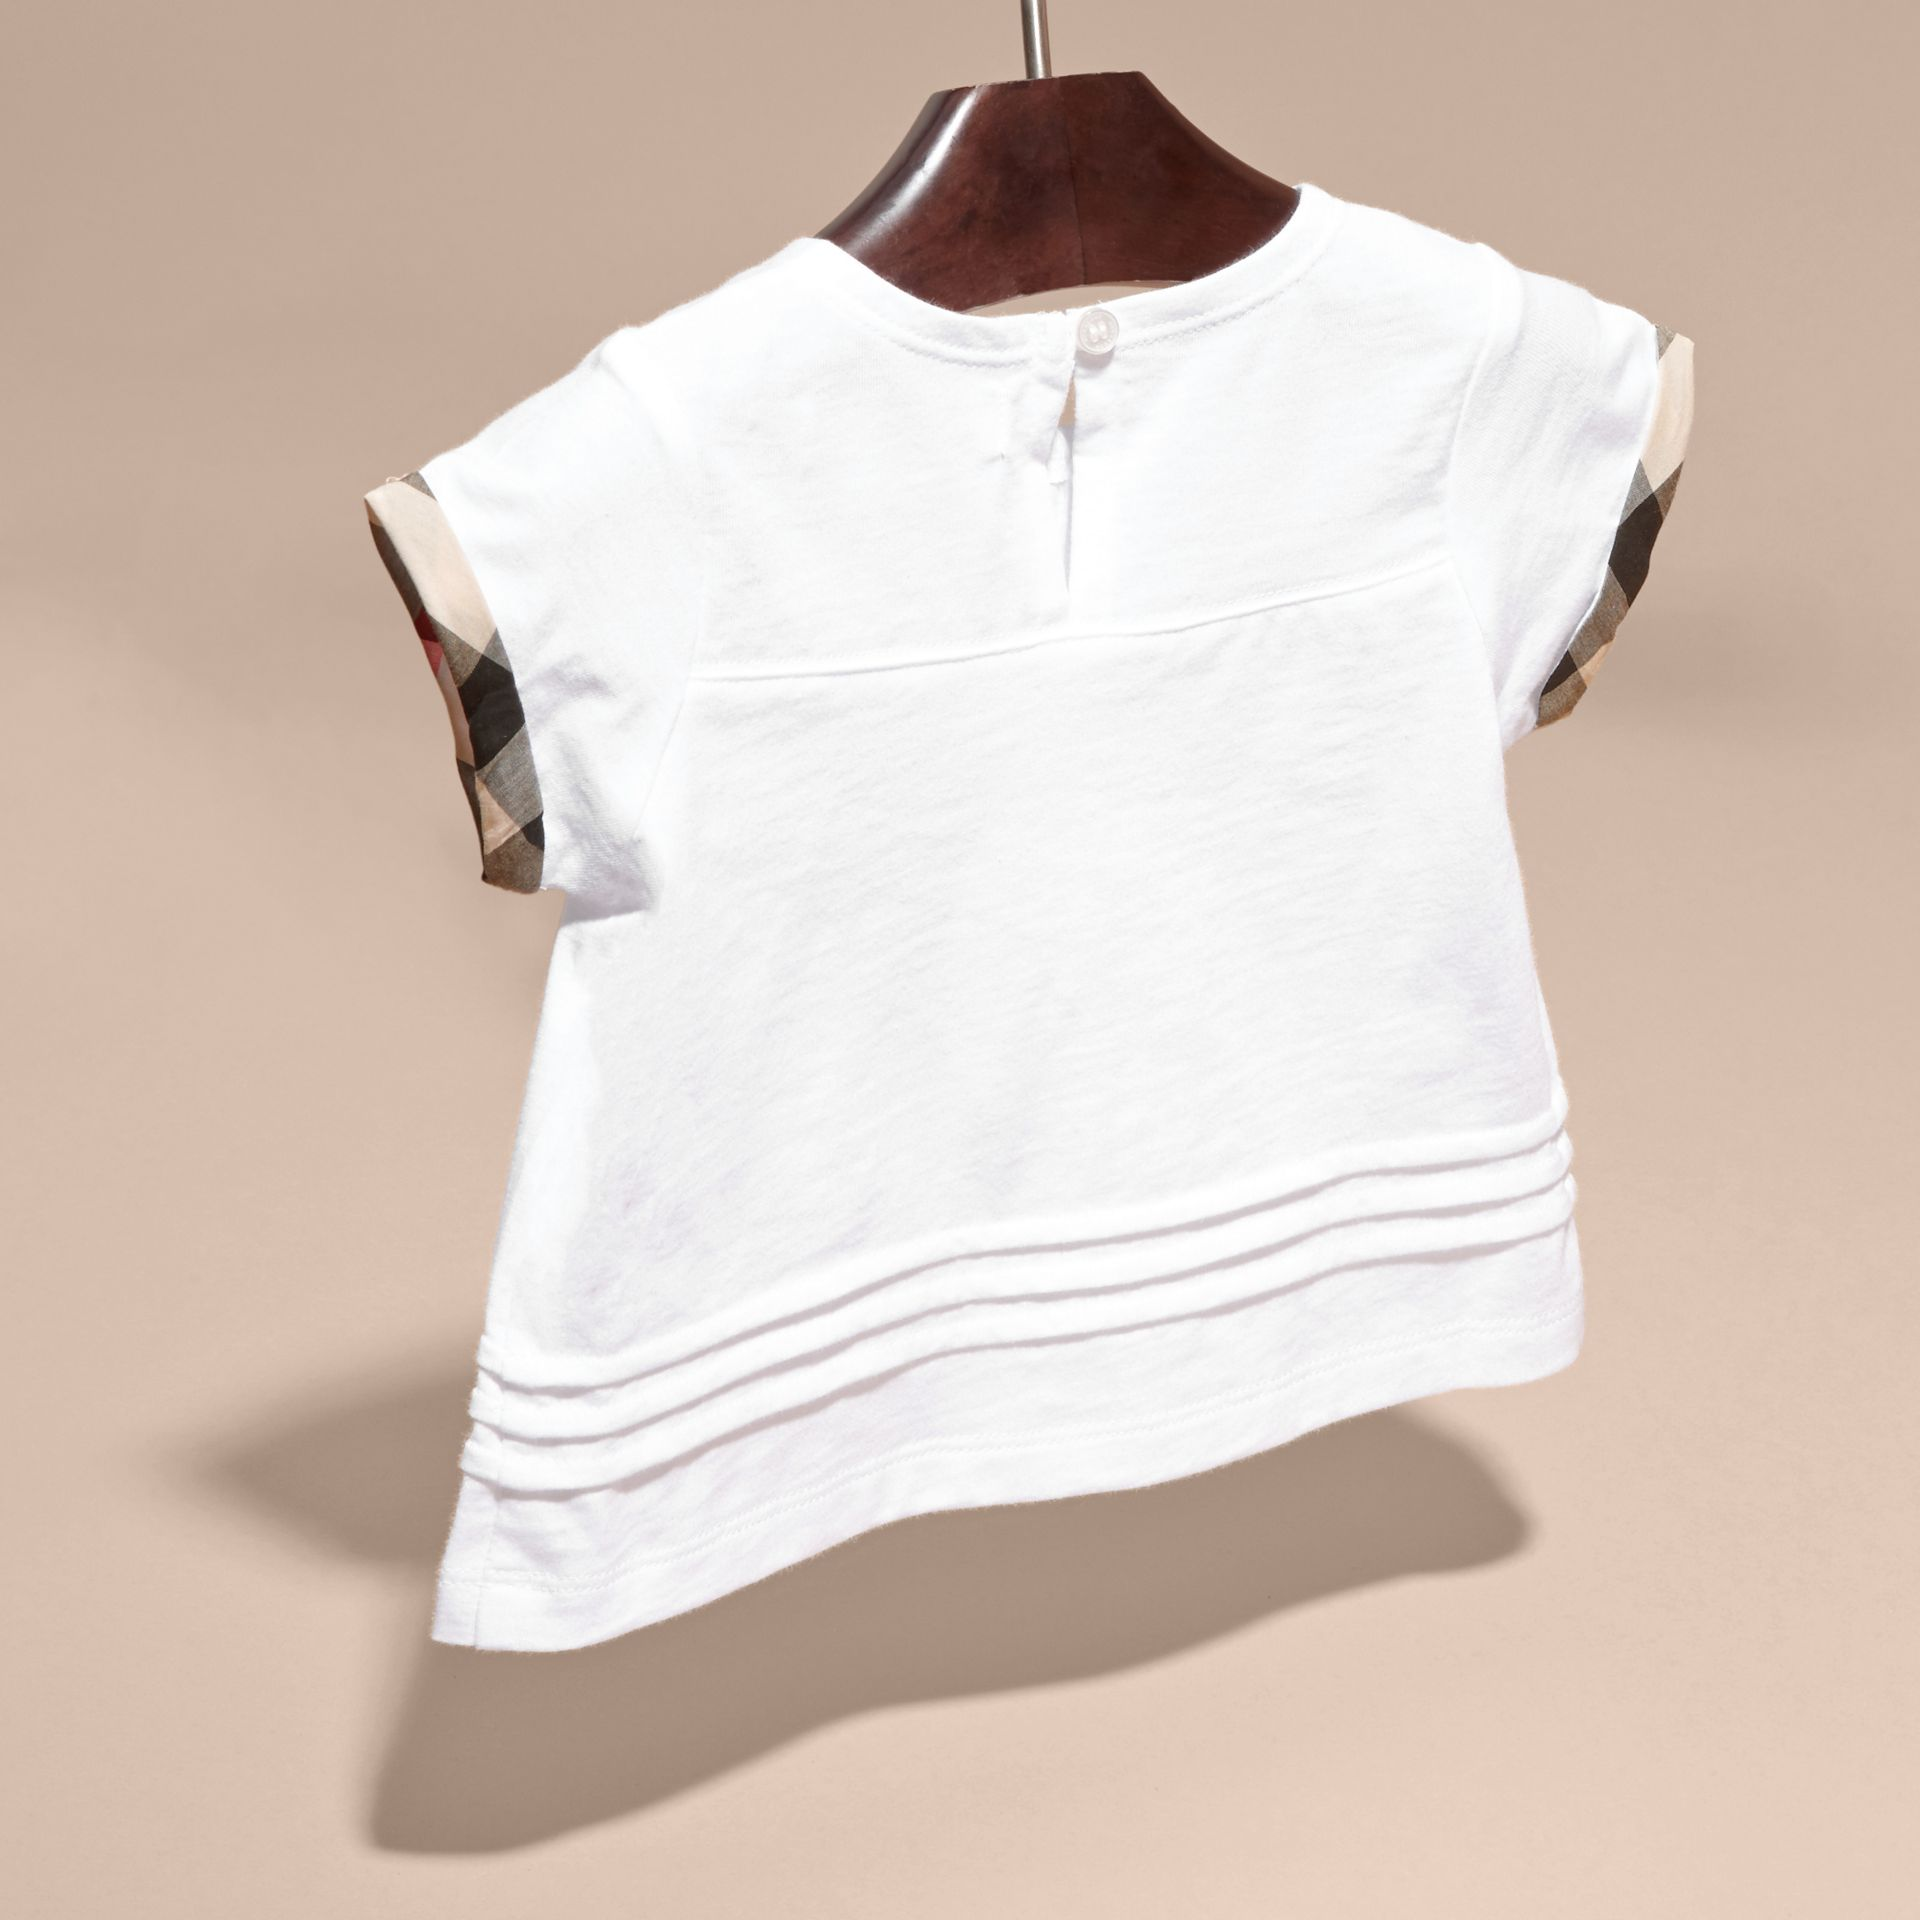 Pleat and Check Detail Cotton T-shirt in White | Burberry - gallery image 3